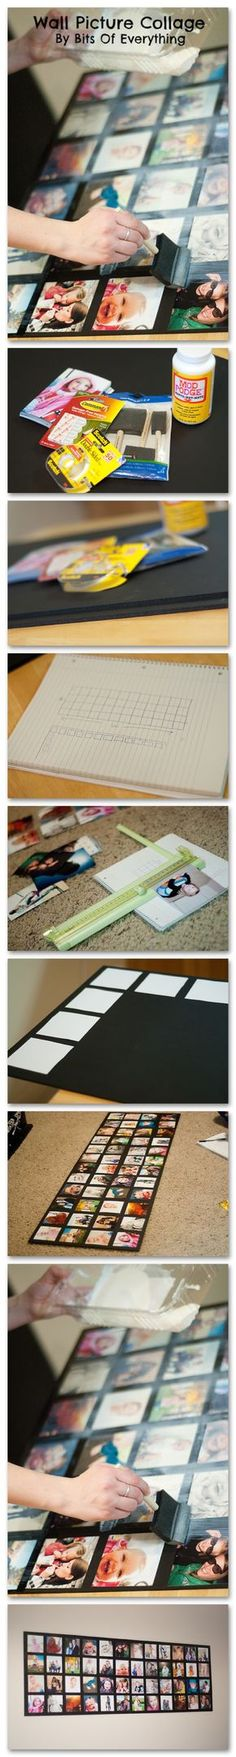 Wall Picture Collage DIY tutorial. This entire project was about $20. Items are:  *48 pictures printed at Walmart .09¢ each (x 48= $4.60) , * 2 - 20×30 black foam core boards ($3 x2 = $6), *Command brand Poster Strips ($2.50), *foam brushes (.97¢), *double sided tape ($2), *Mod Podge ($5),